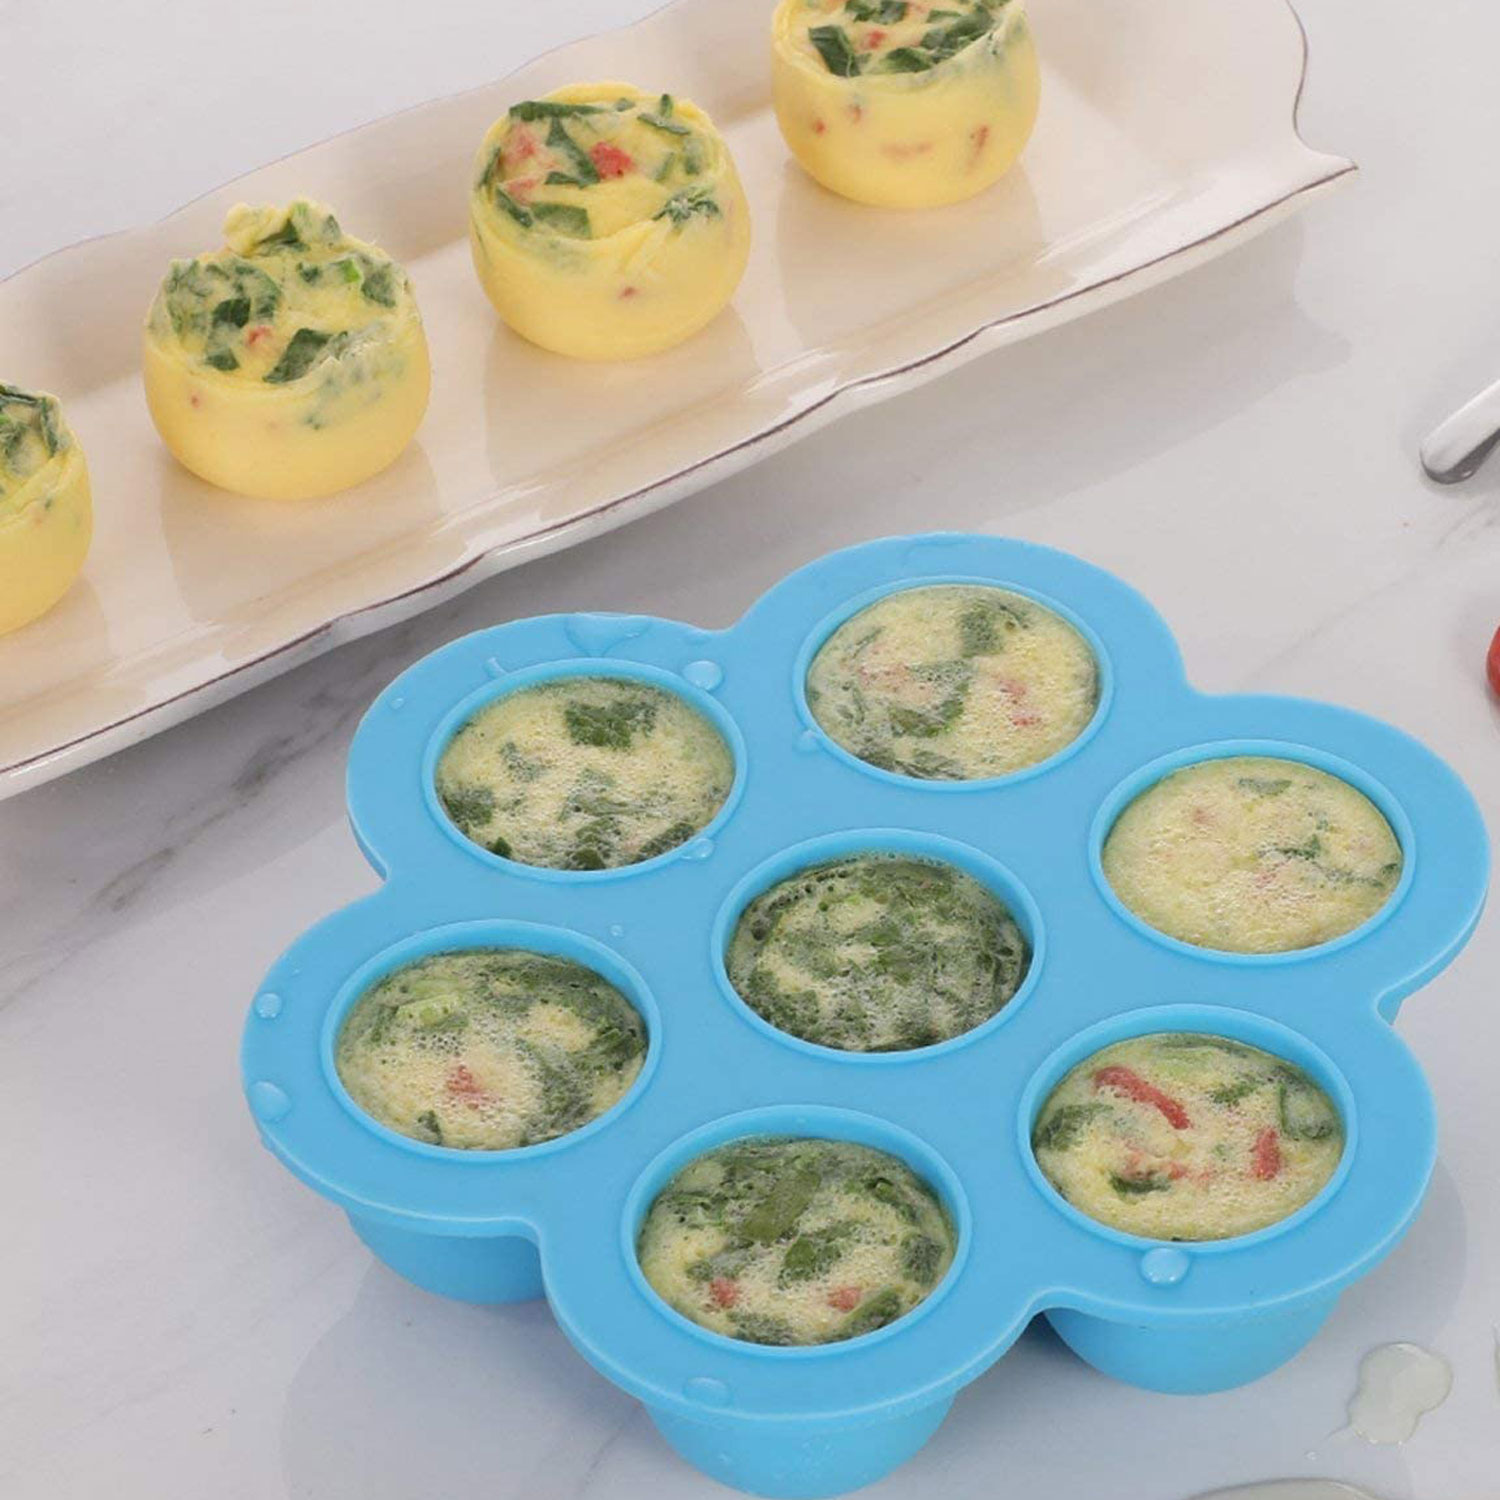 I Love Using This Silicone Mold for Making Copycat Starbucks Sous Vide Egg Bites at Home